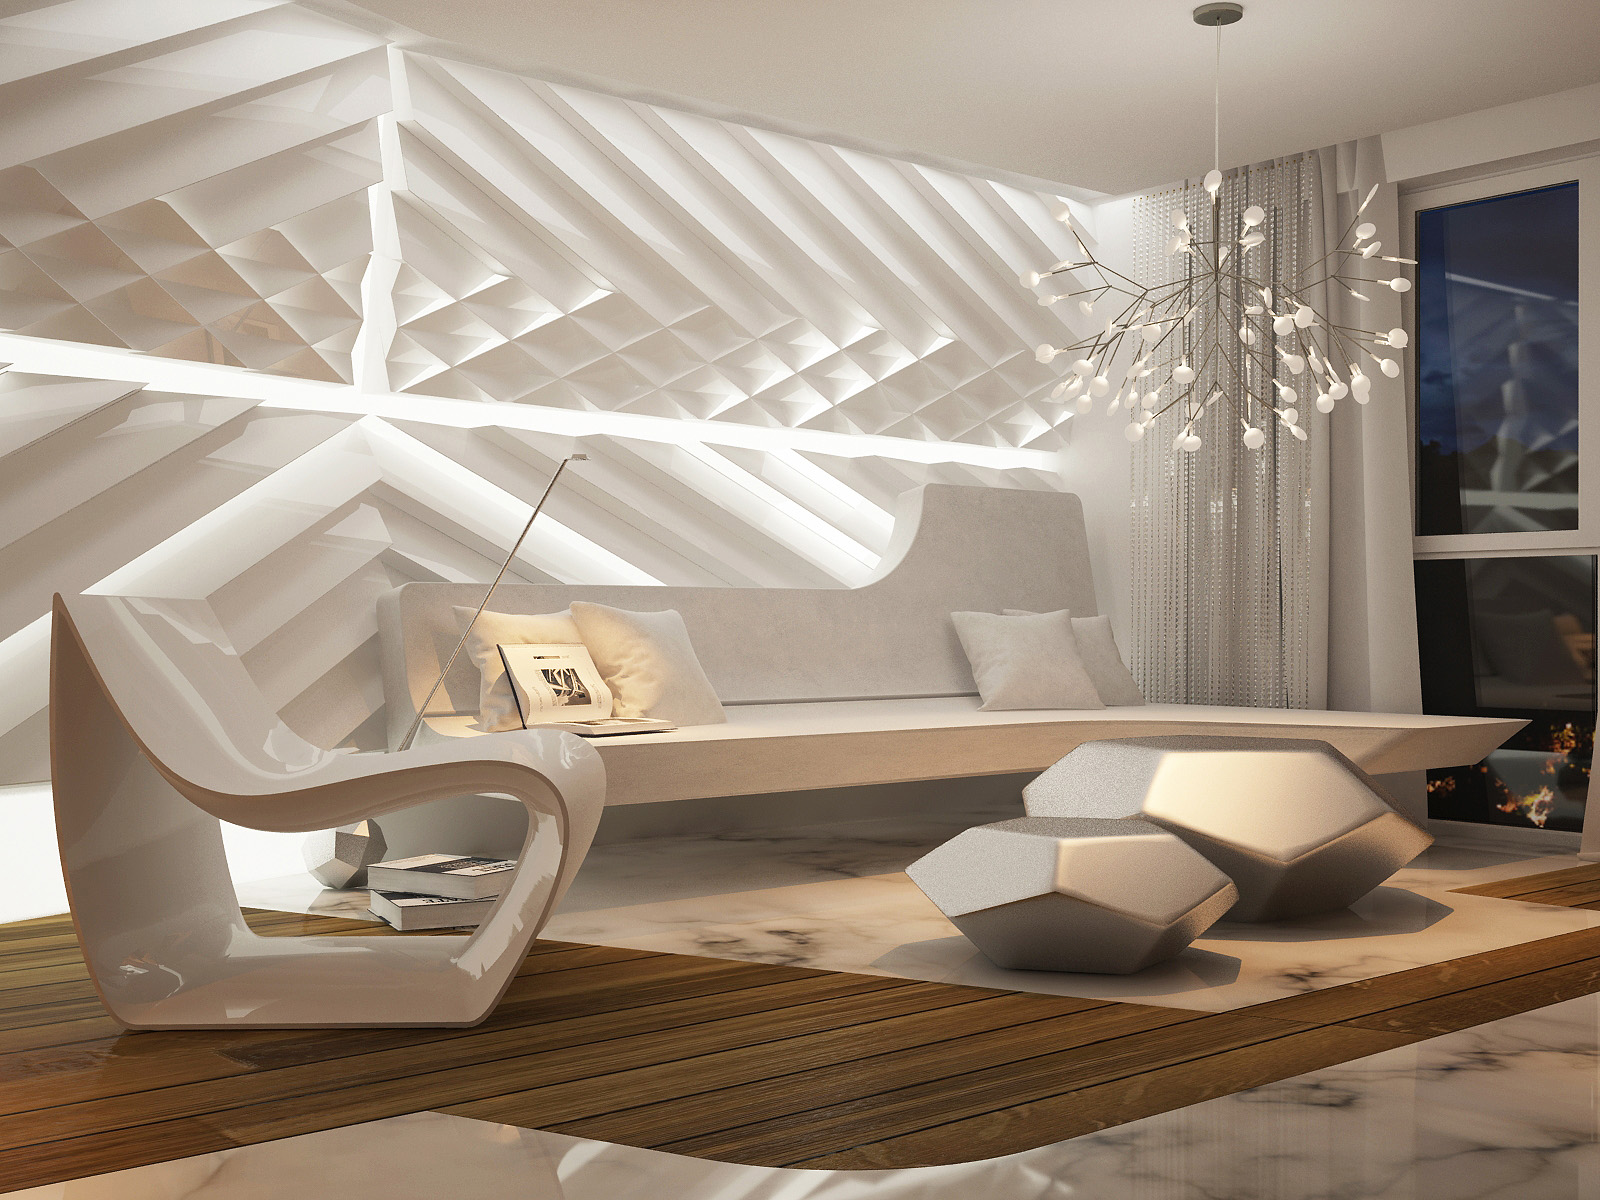 futuristic interior design - Simple Shapes Wall Design